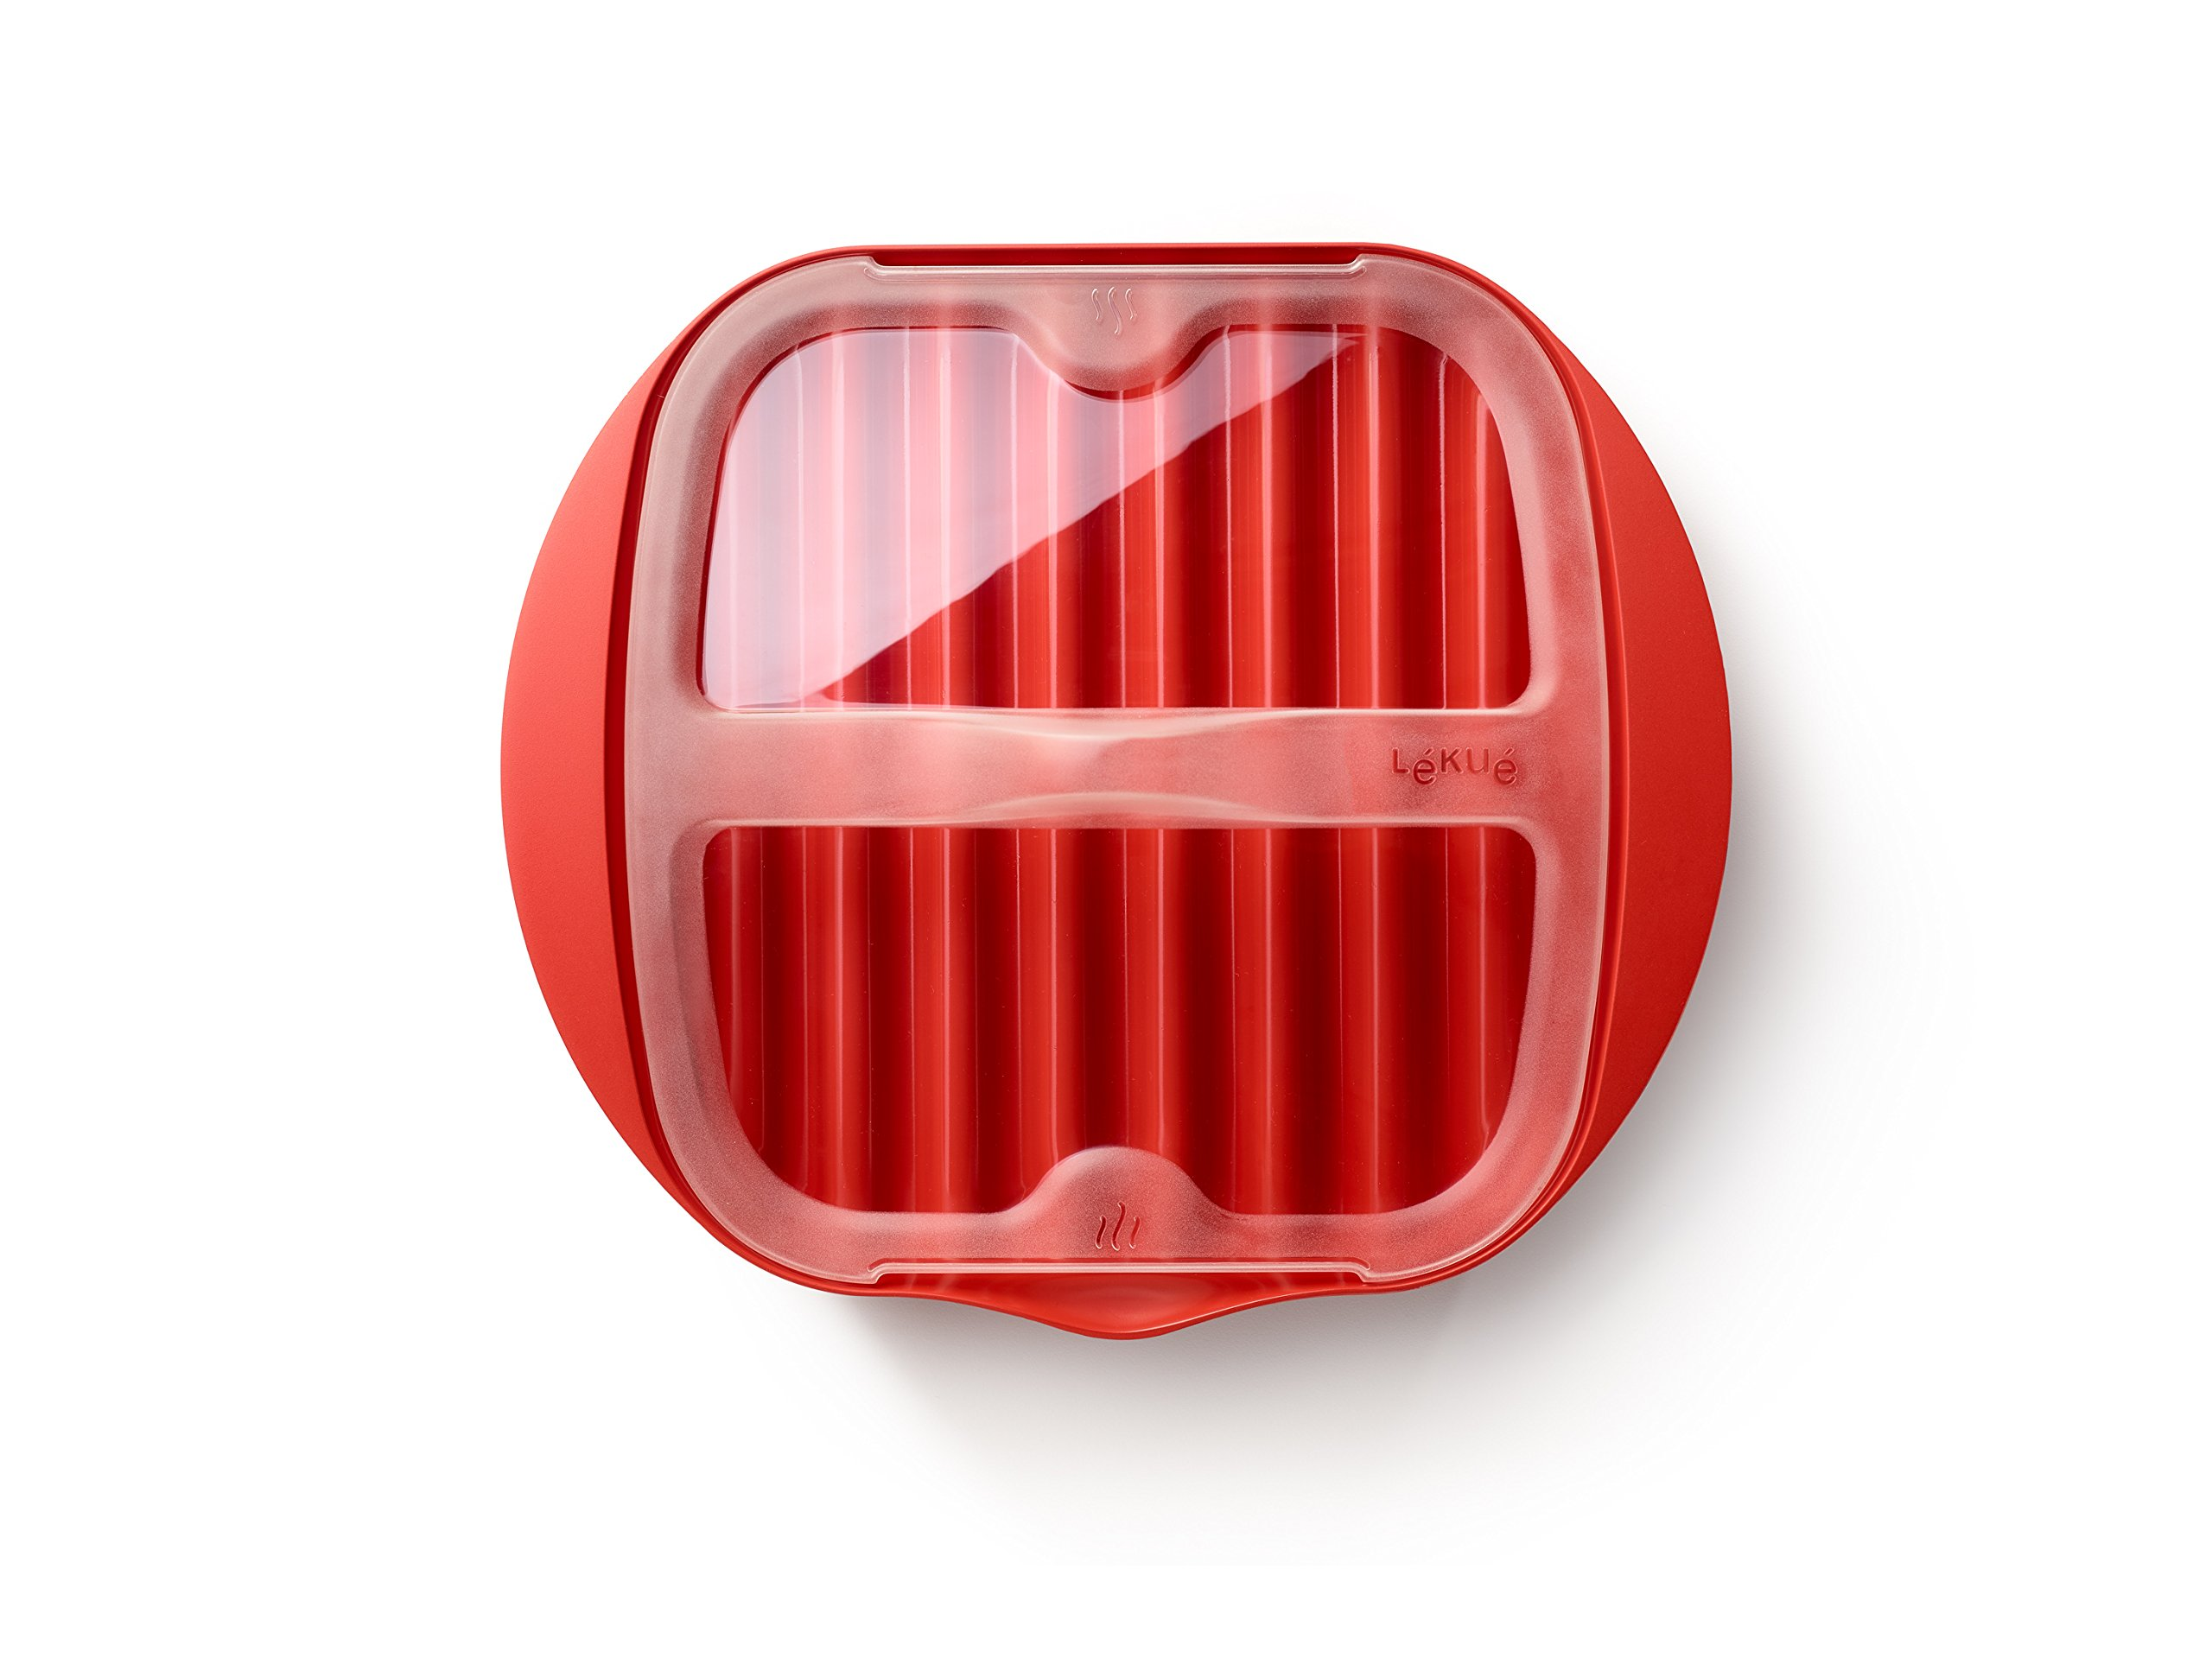 Lekue Microwave Bacon Maker/Cooker with Lid, 11.02'' L x 9.8'' W x 2.3'' H, Red by Lekue (Image #2)